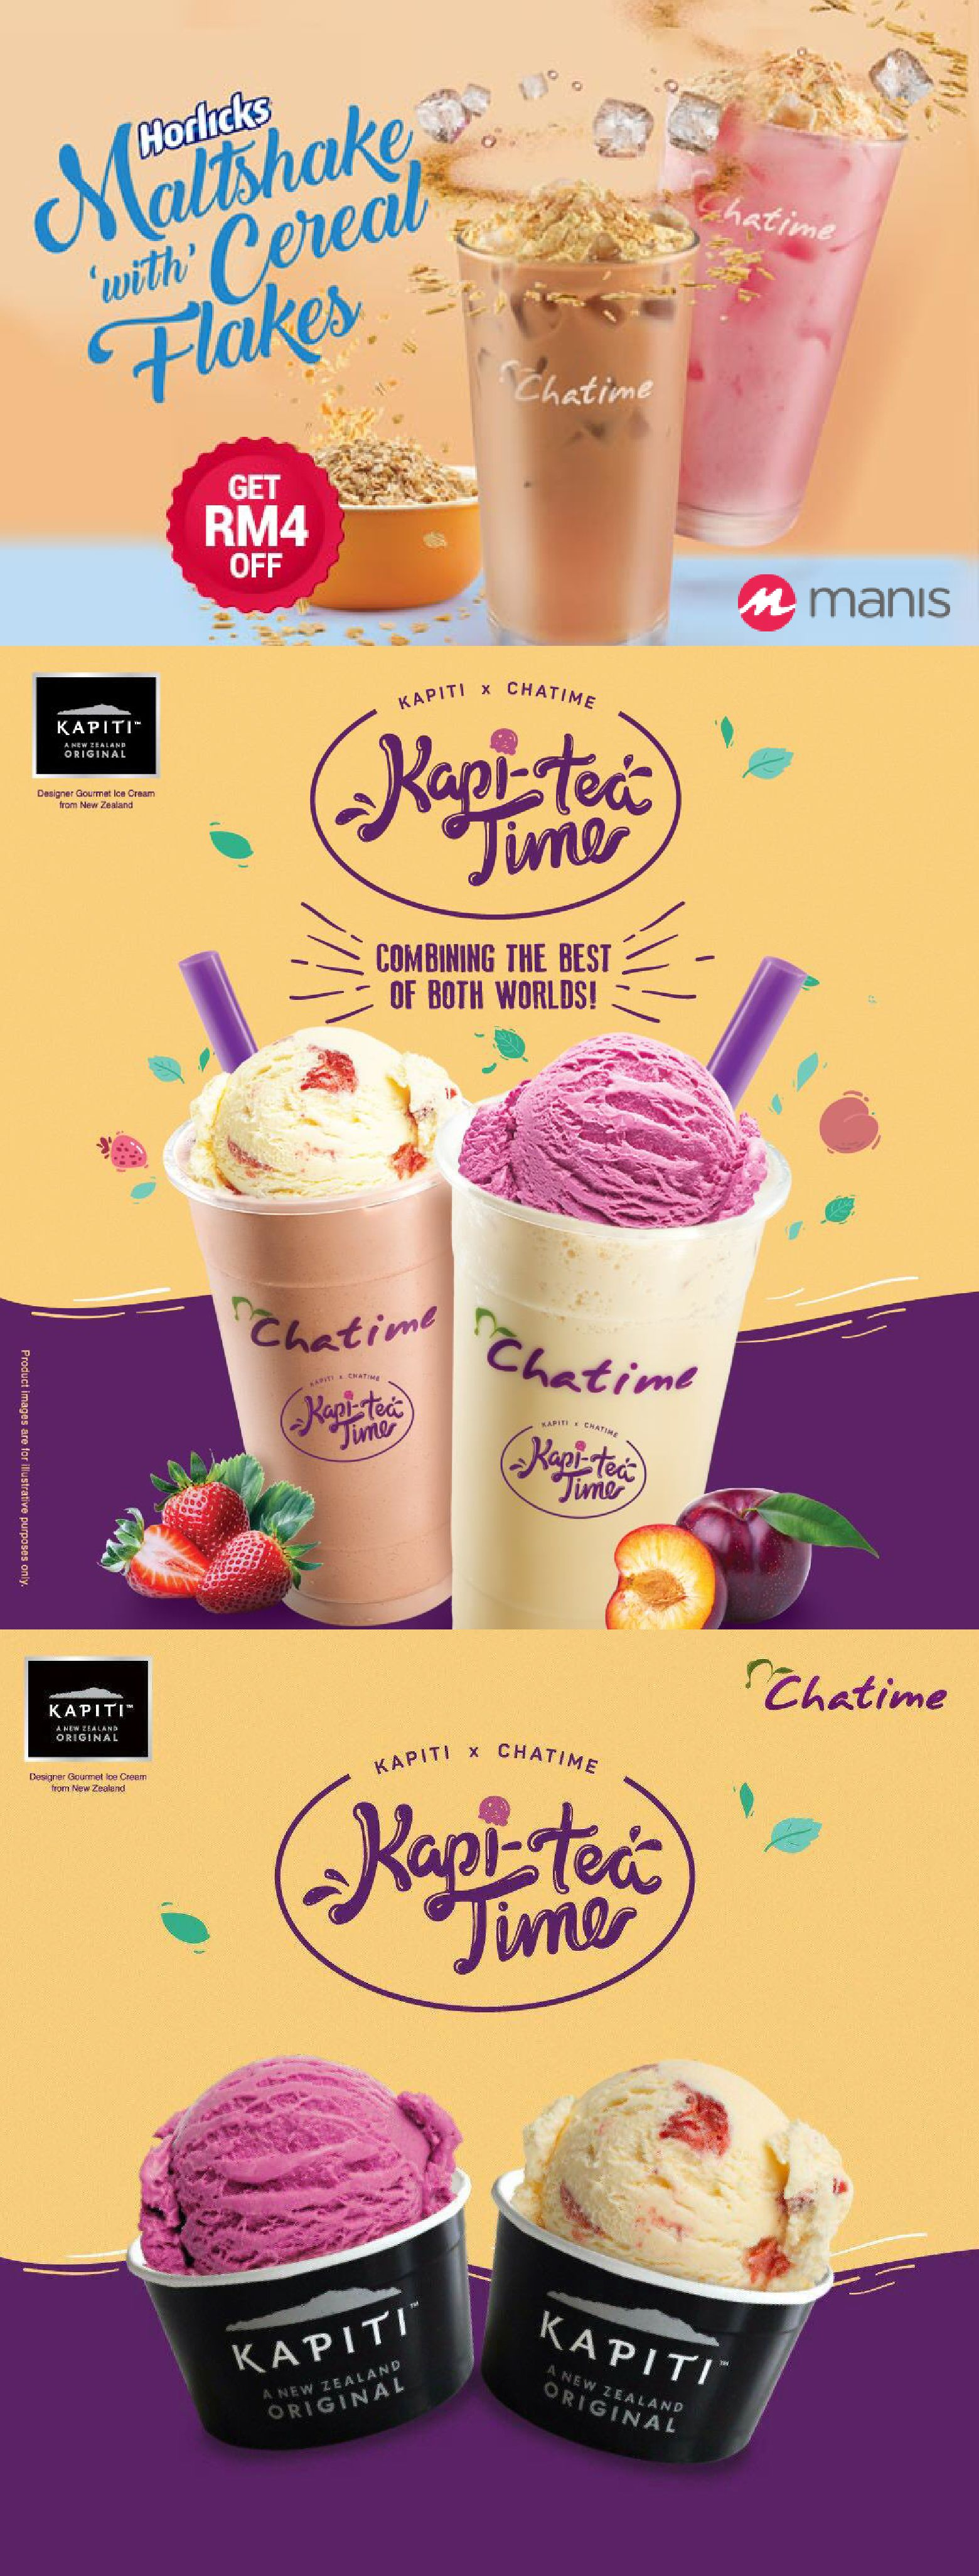 Need A Little Sprinkle On Your Monday Introducing The New Indulgence From Chatime Malaysia Horlicks Maltshake With Cere Makanan Desain Grafis Poster Minuman